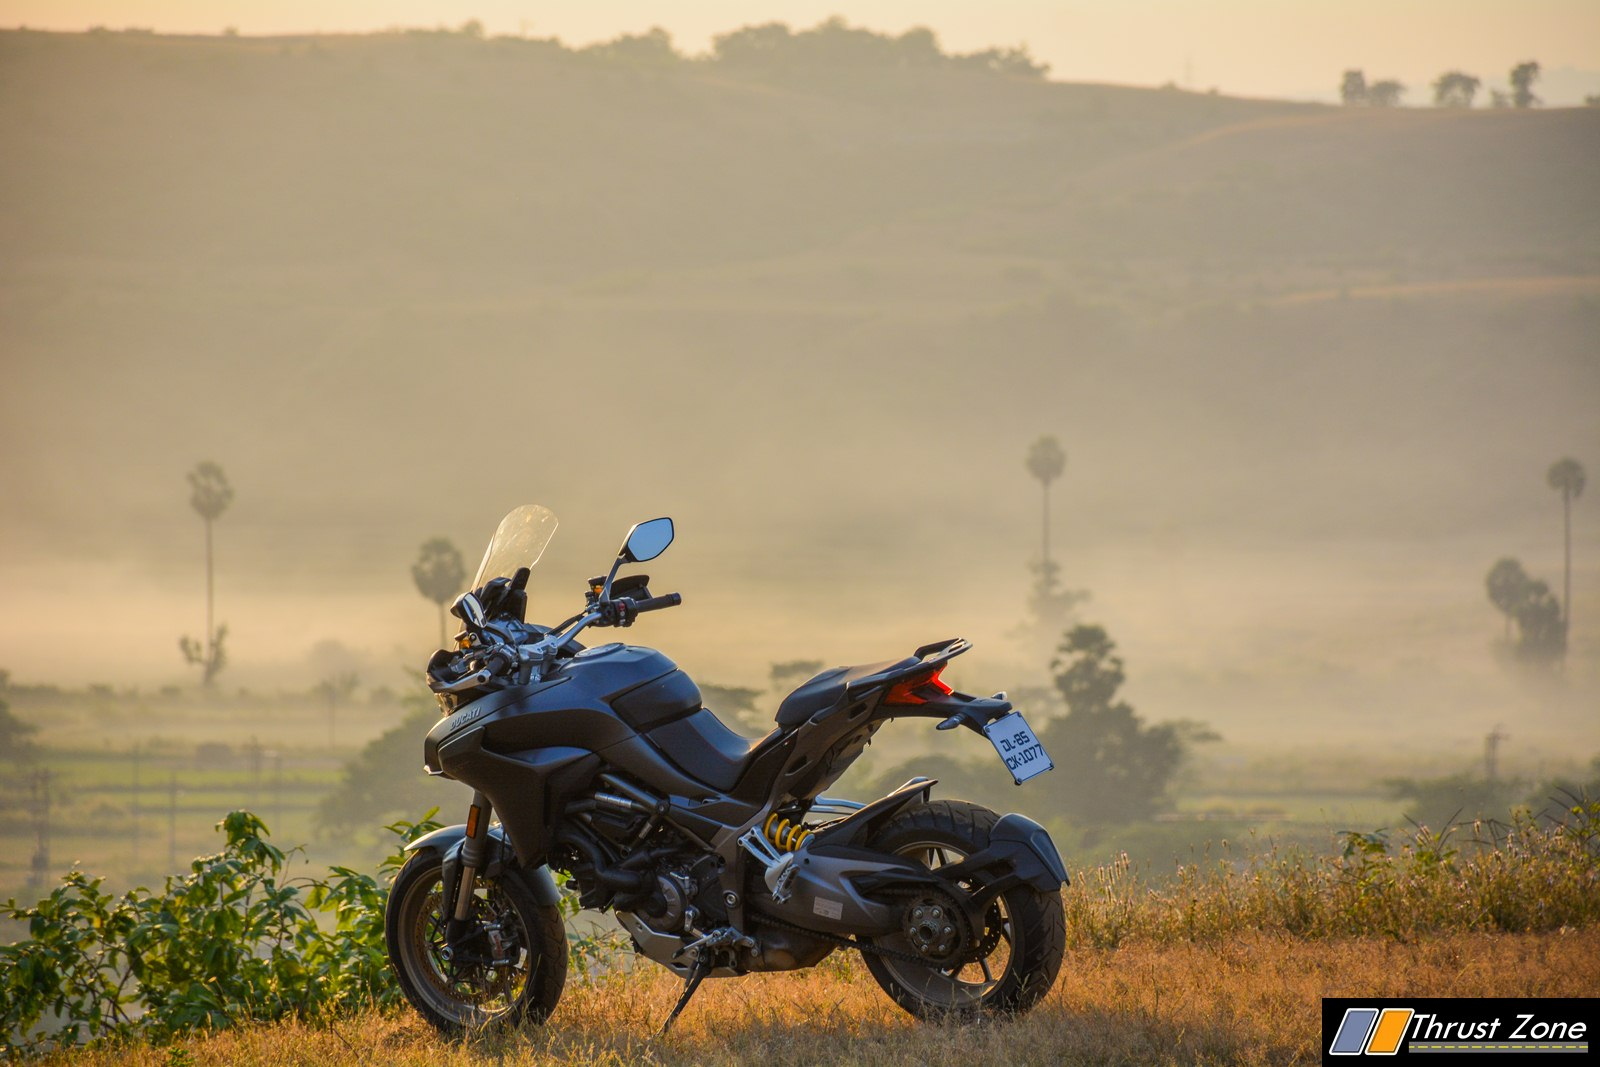 https://www.thrustzone.com/wp-content/uploads/2018/11/2018-Ducati-Multistrada-1260-India-Review-34.jpg